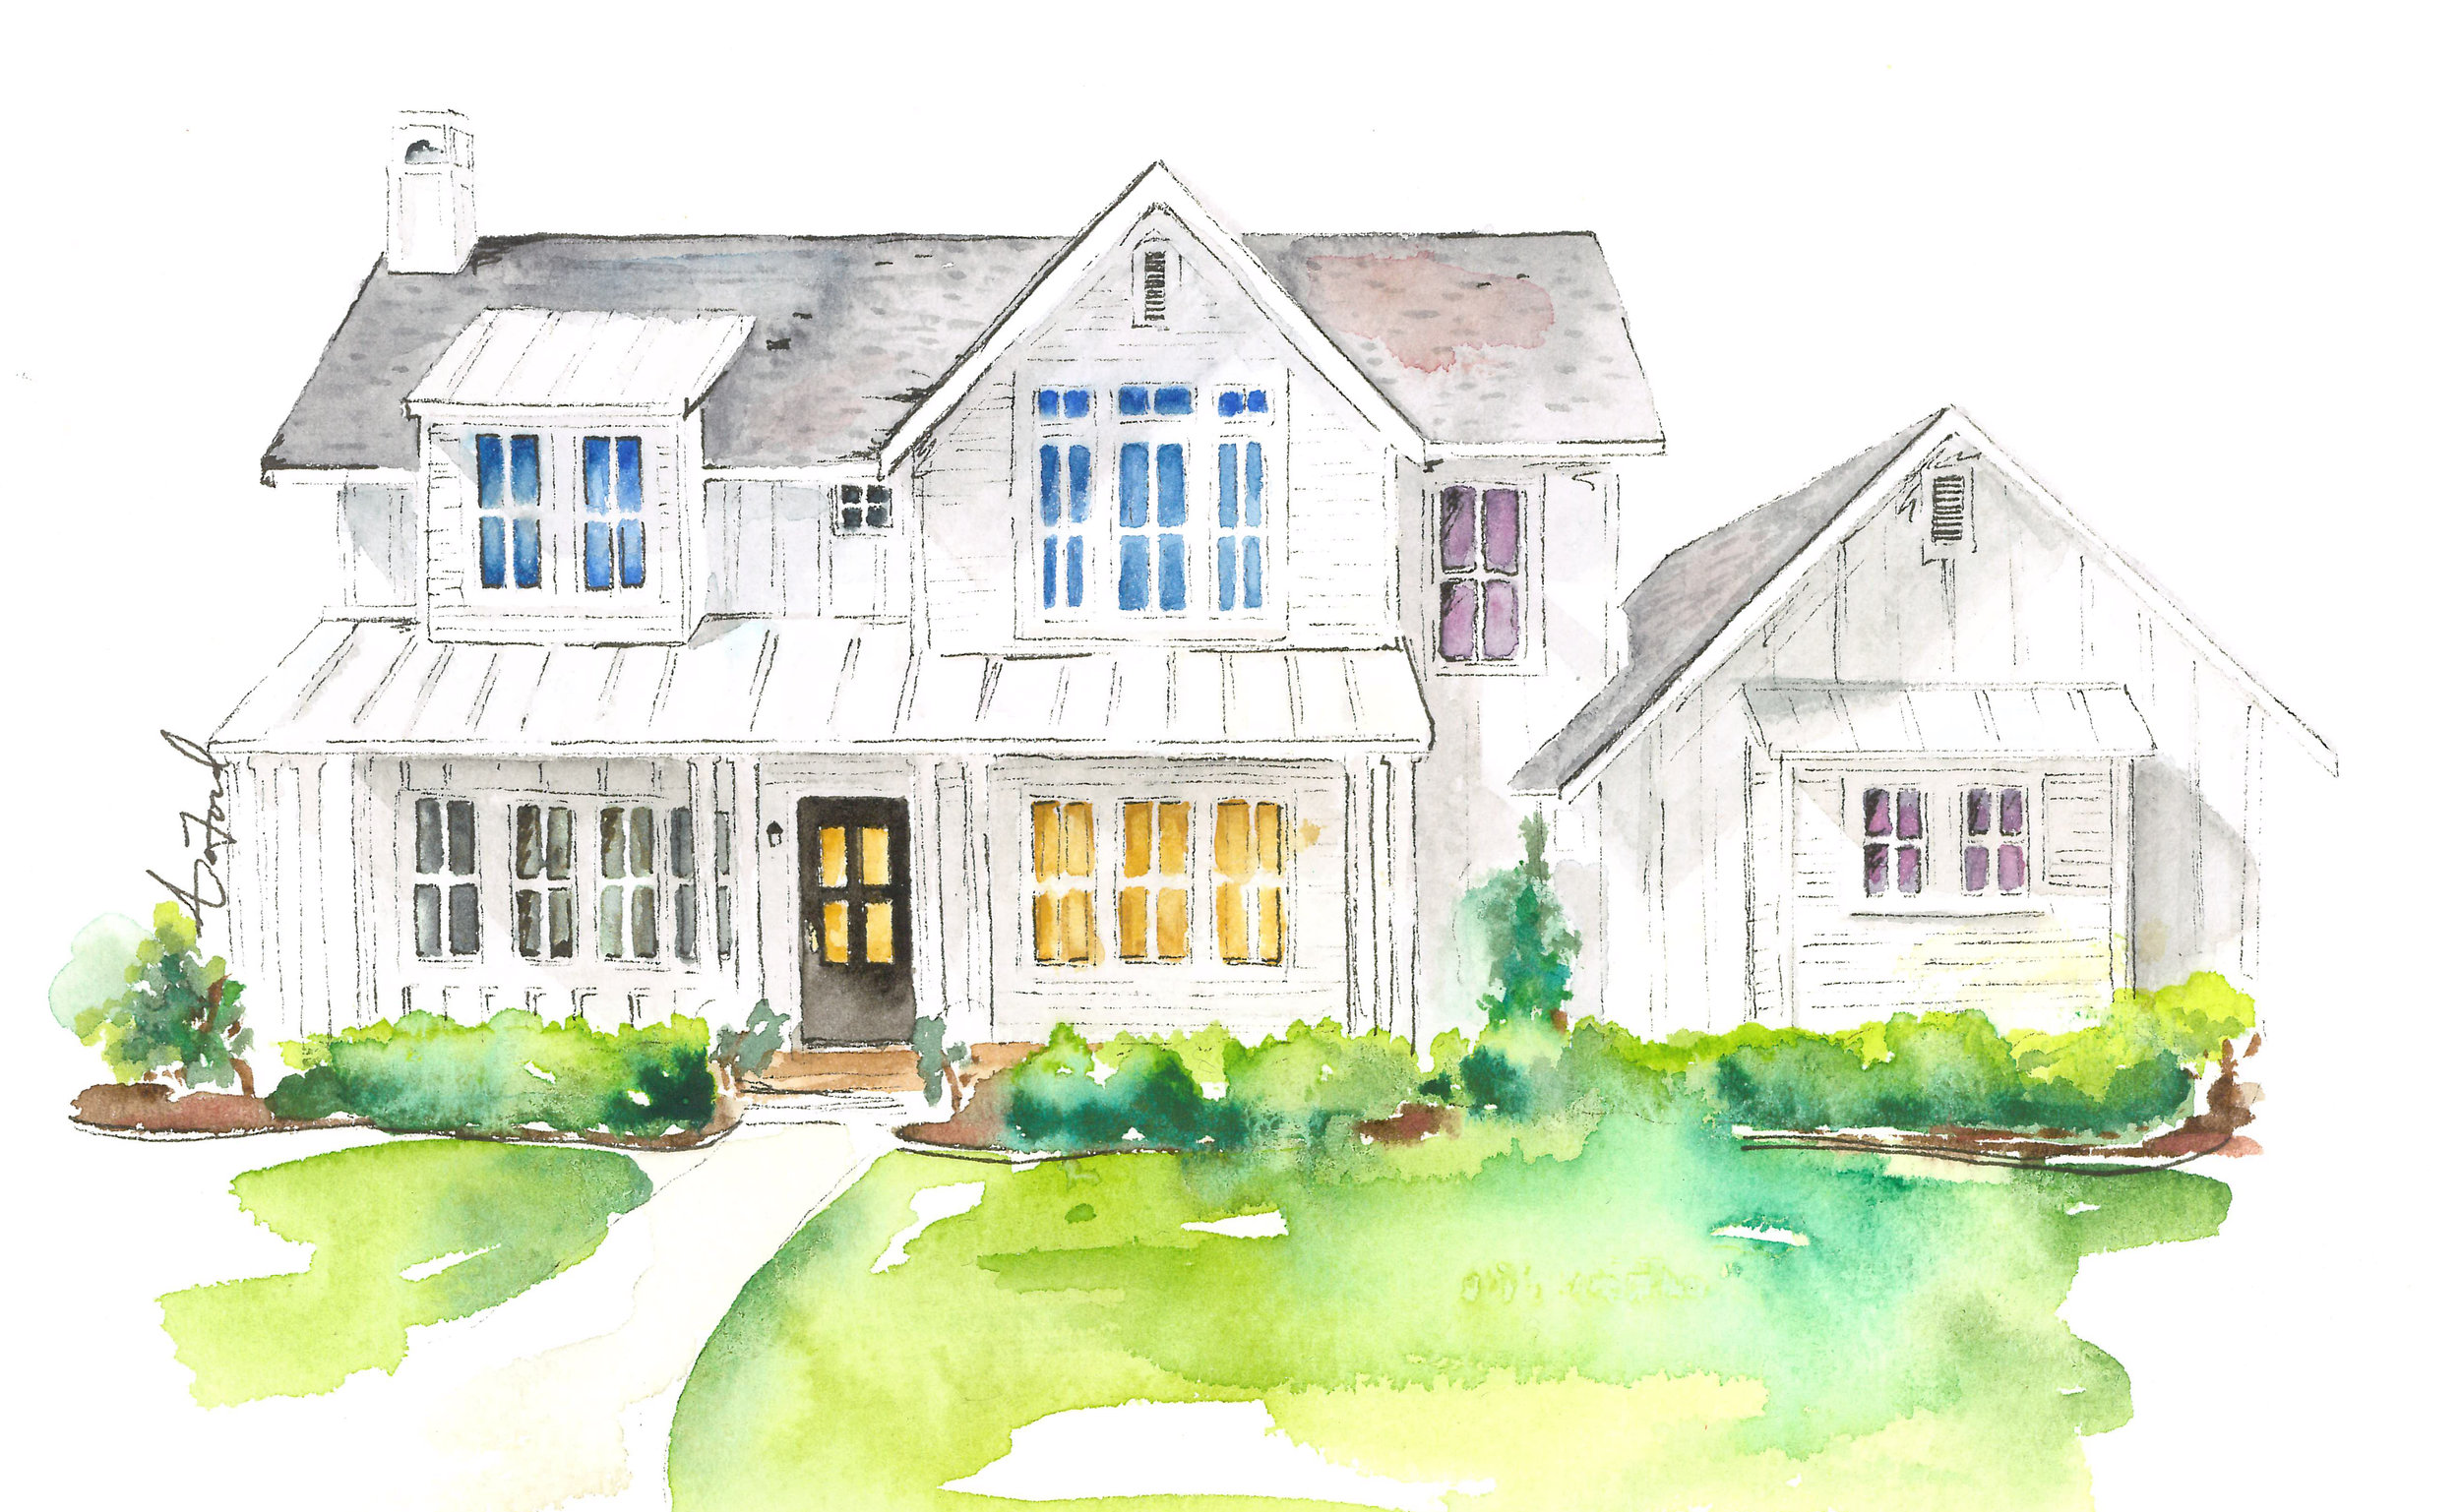 Watercolor by Audrey DeFord